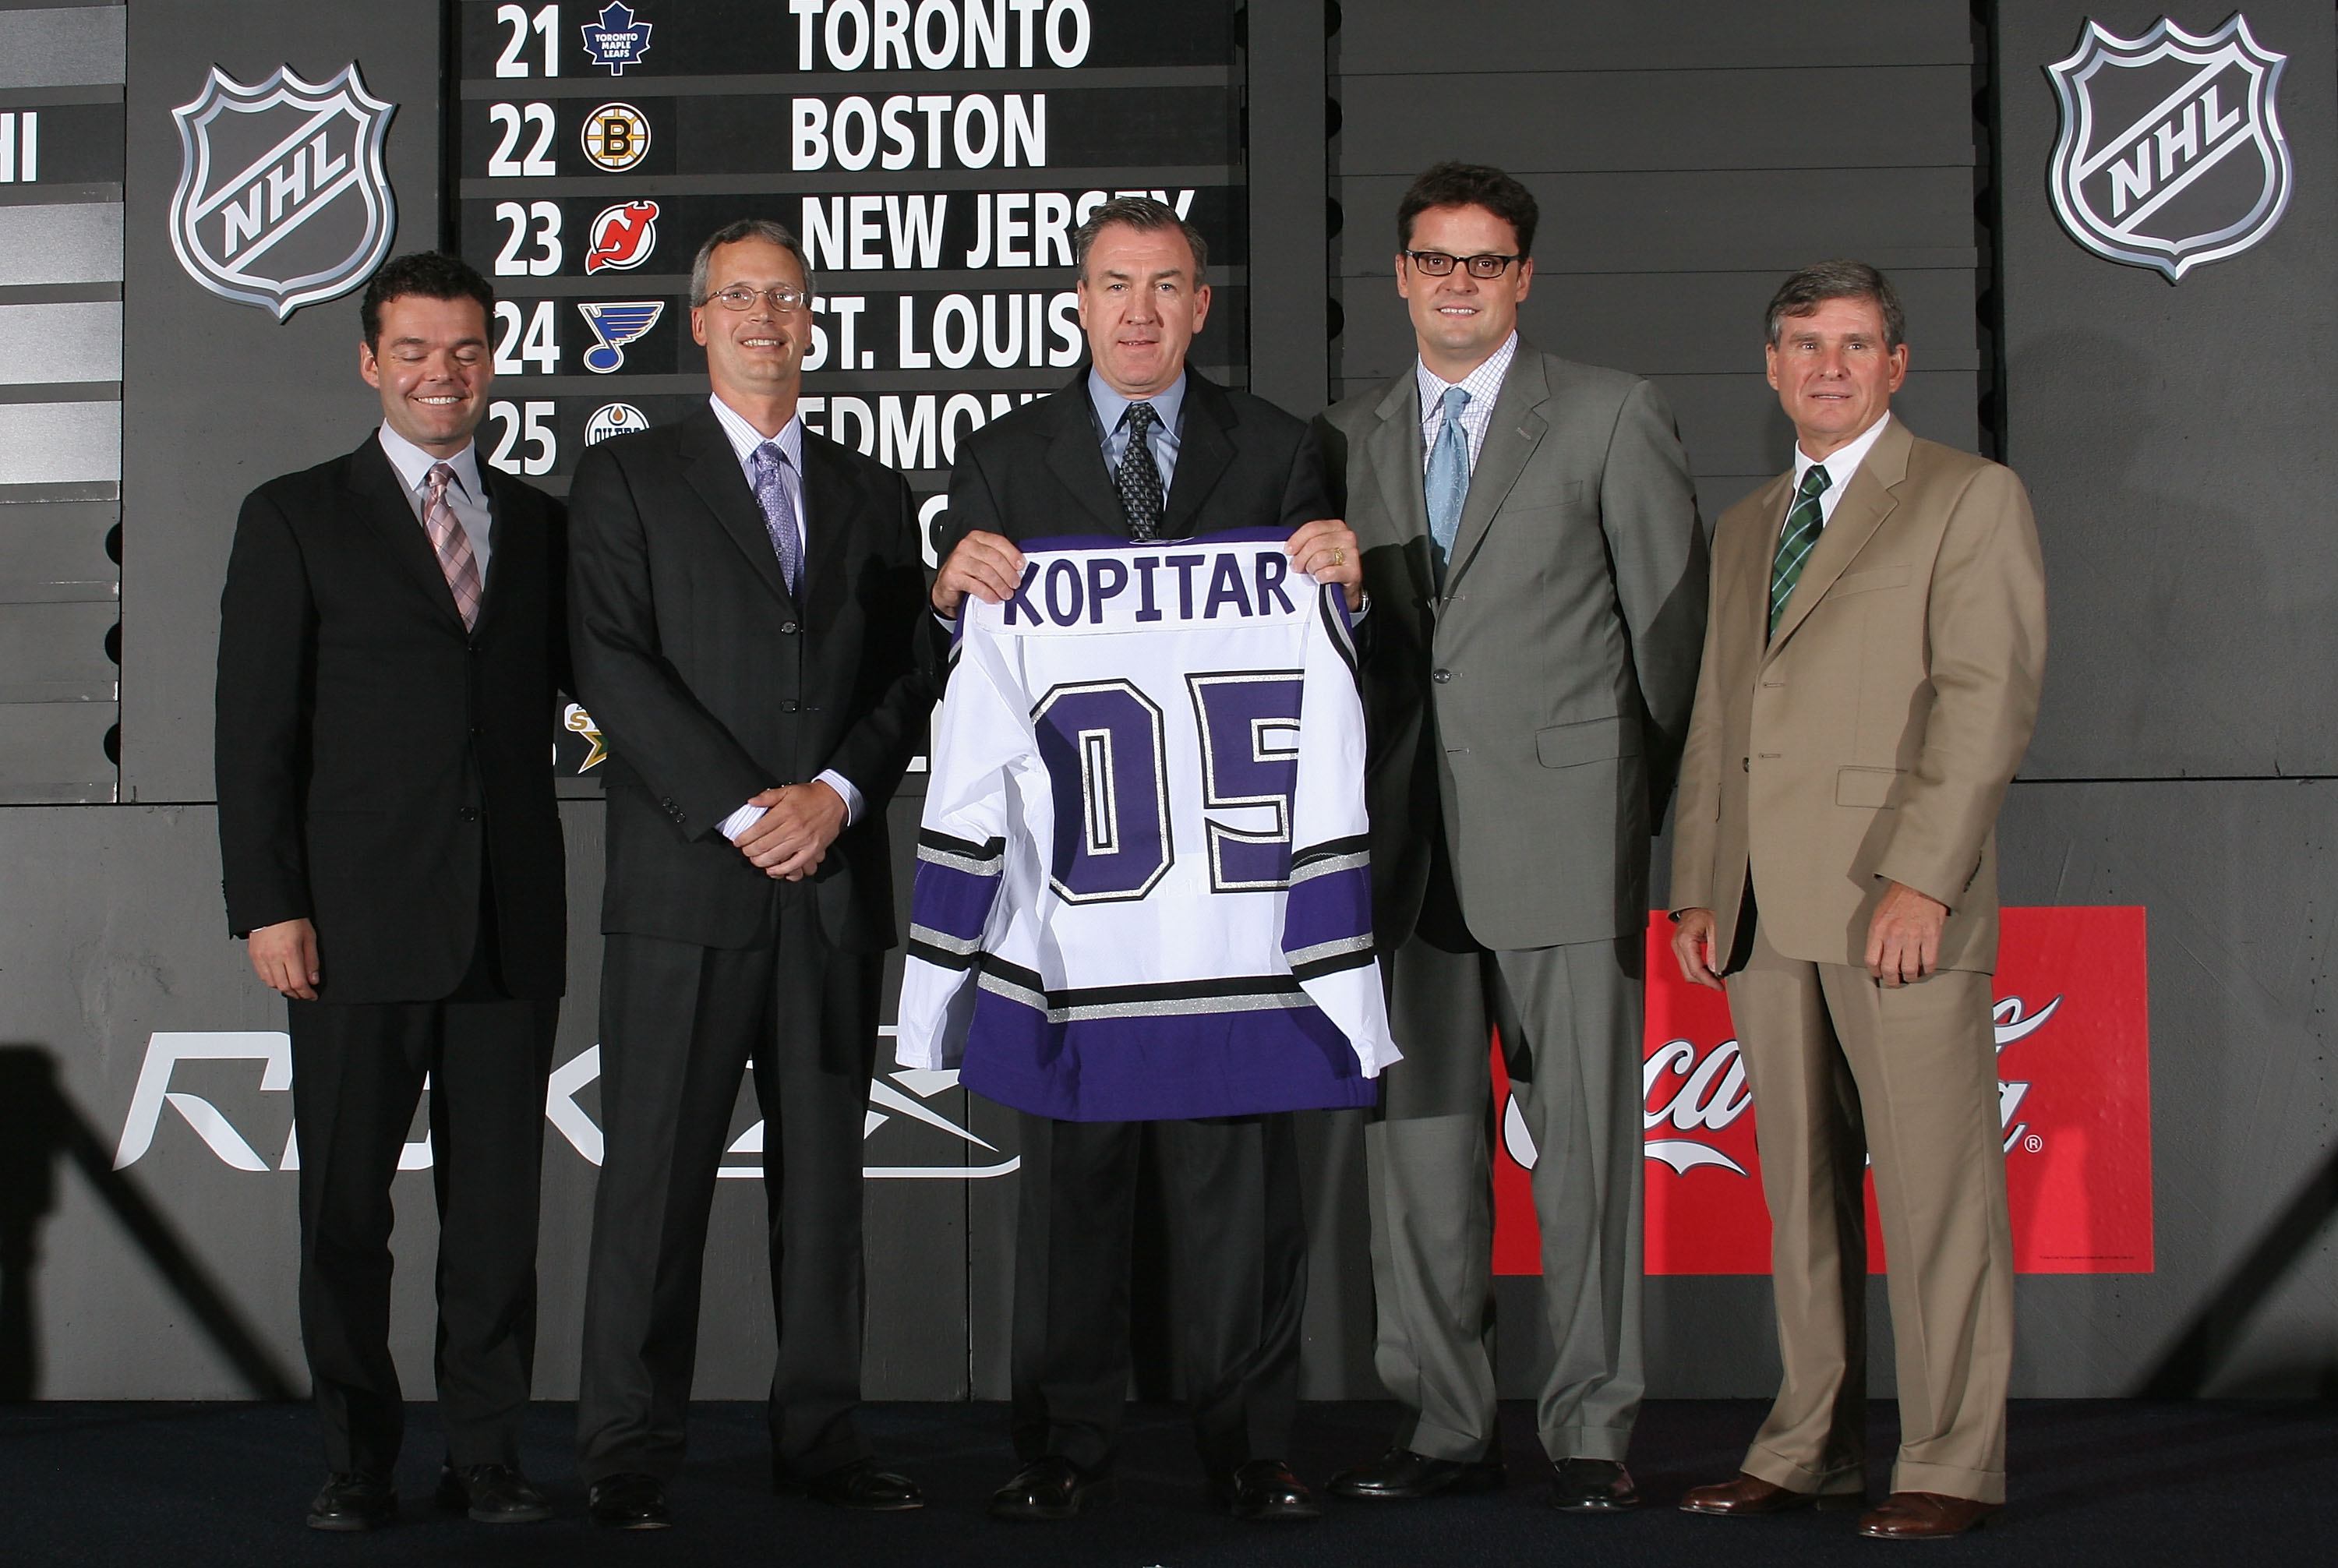 The Kings provide the blueprint for building a salary cap era Stanley Cup champion